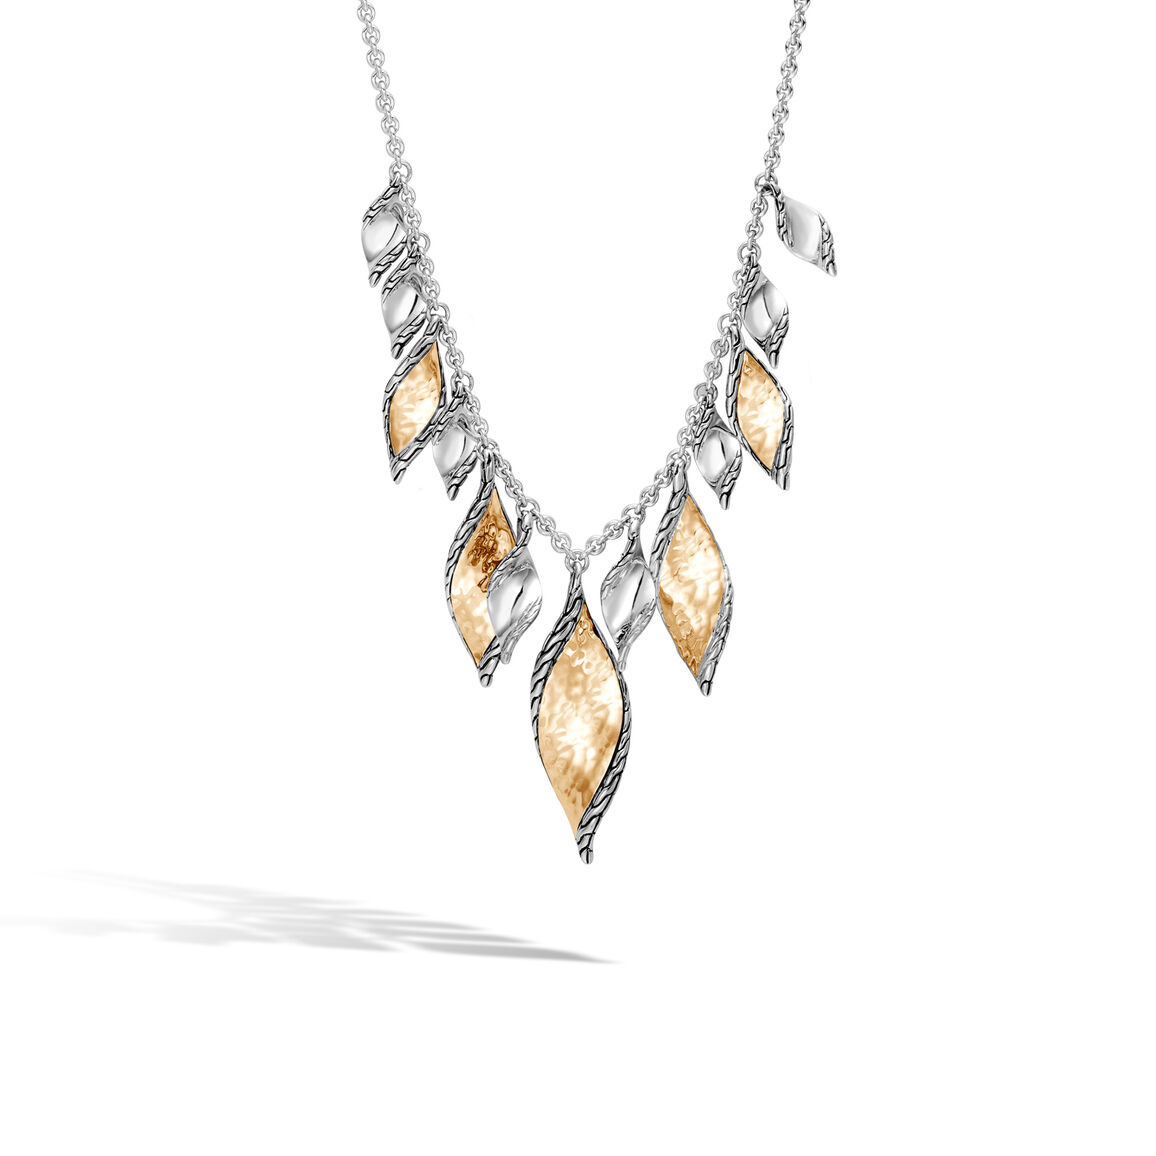 Classic Chain Wave Necklace in Silver and Hammered 18K Gold